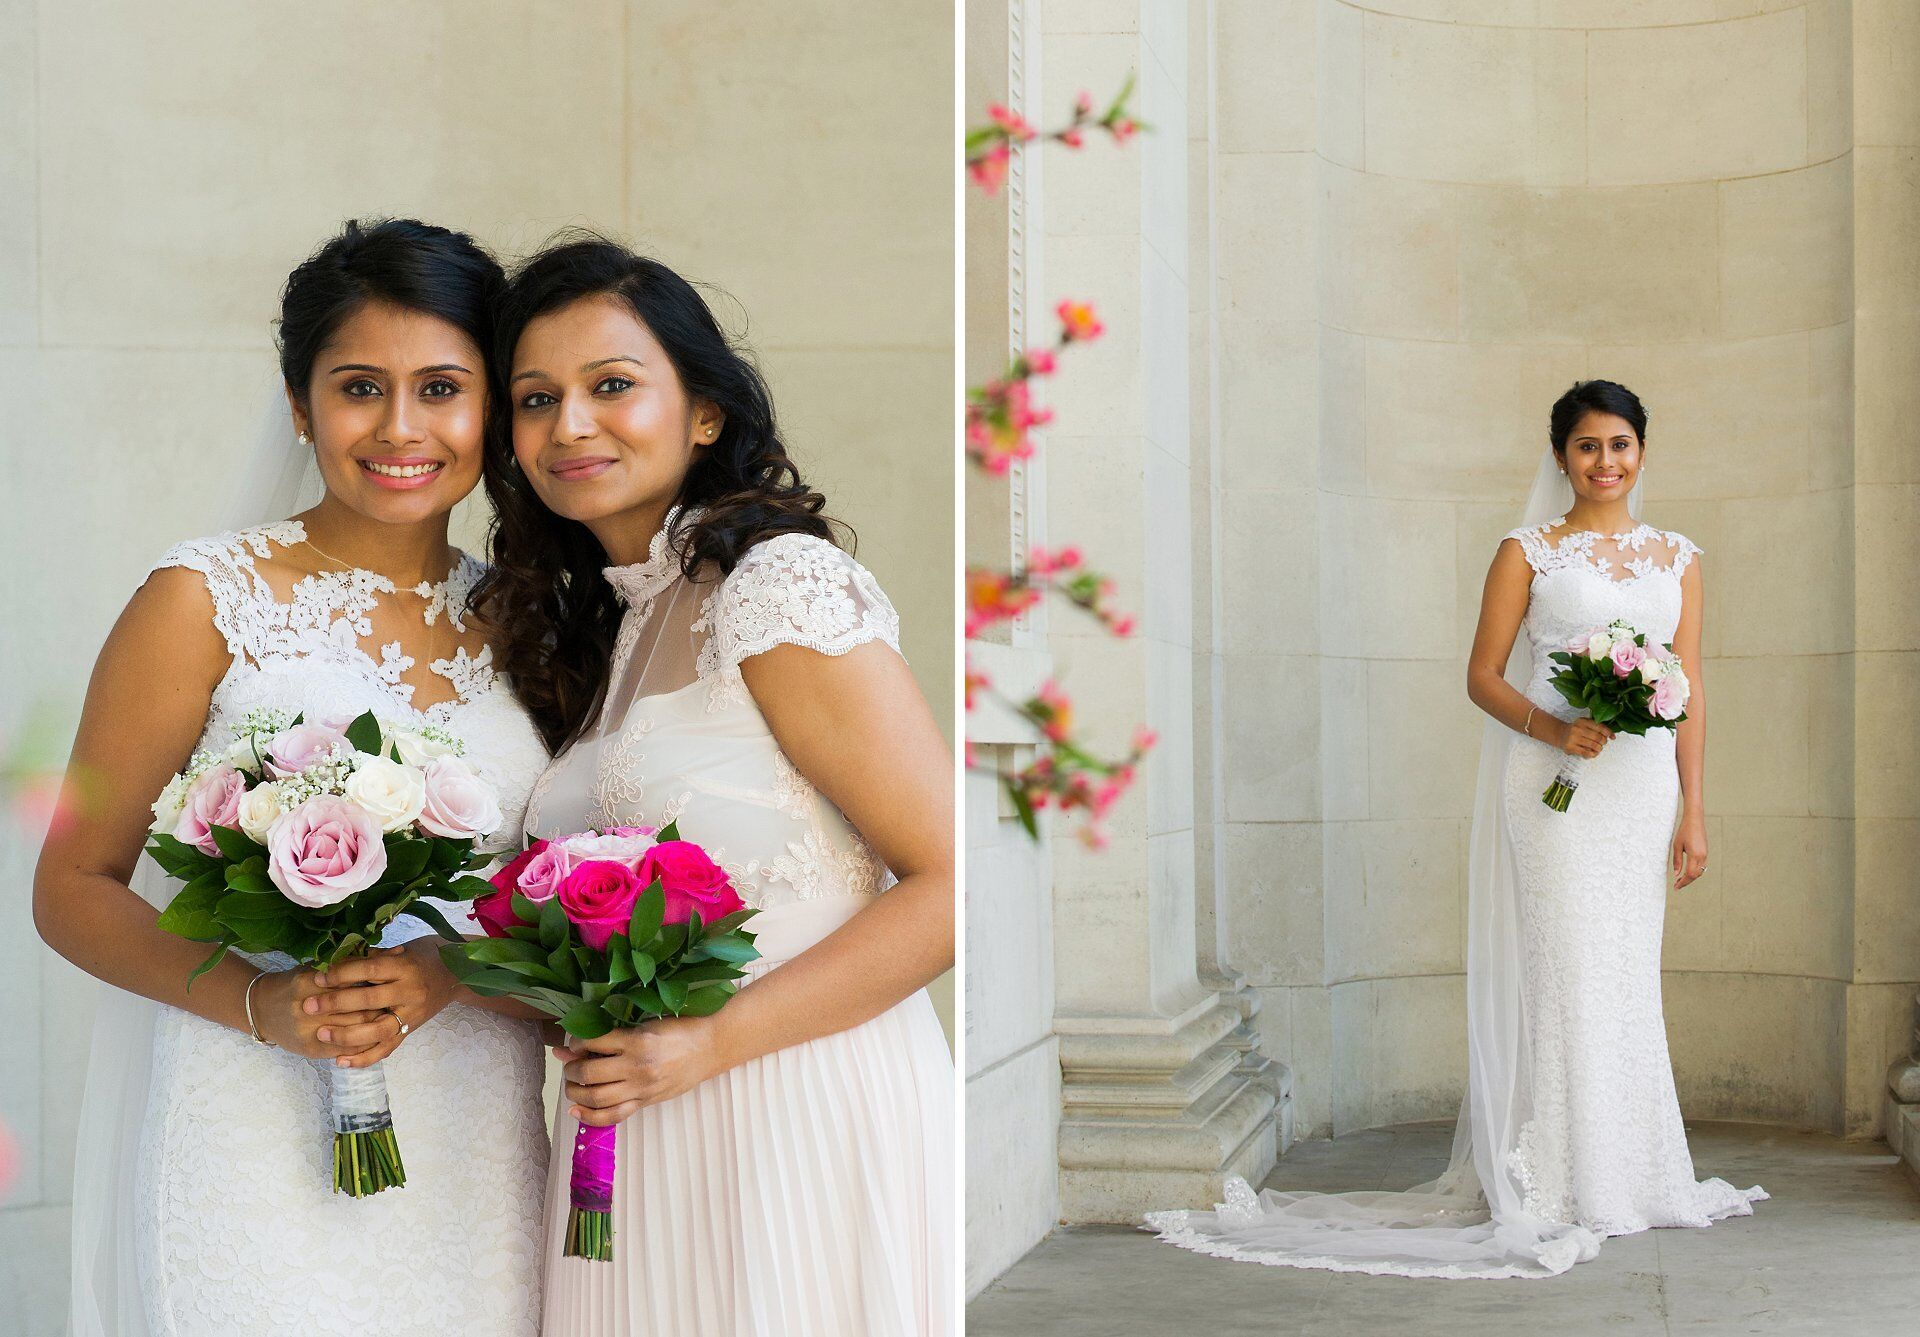 bride with cathedral veil at old marylebone town hall with her sister